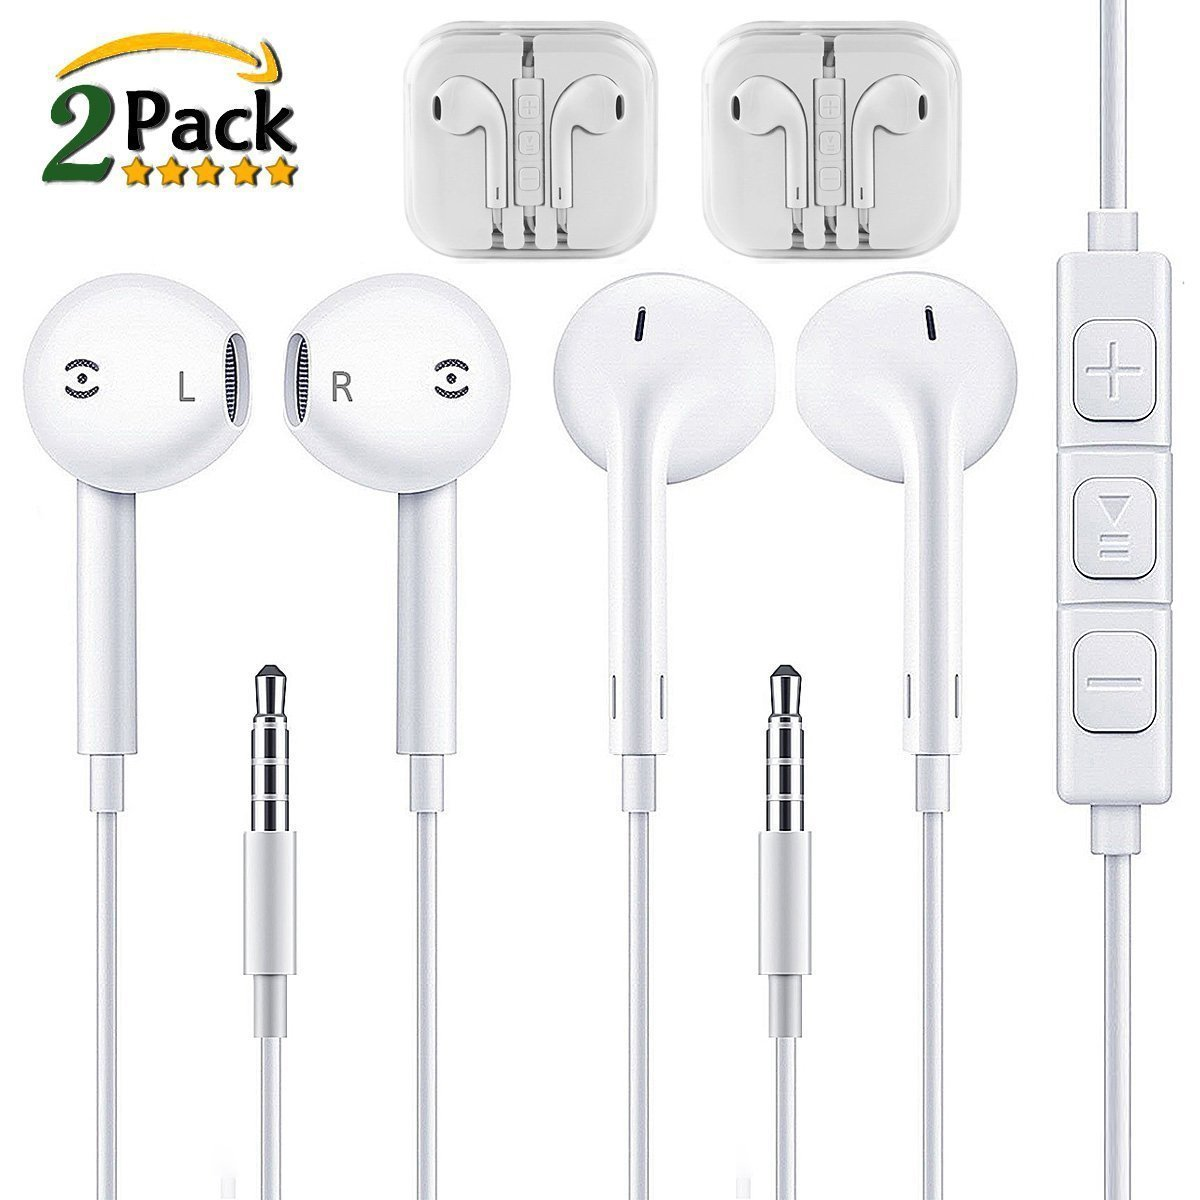 9f4f1e6caeb Earbuds,Apple Earphones,XUYAO In Ear Headphones With Mic & Remote,Stereo  Sound